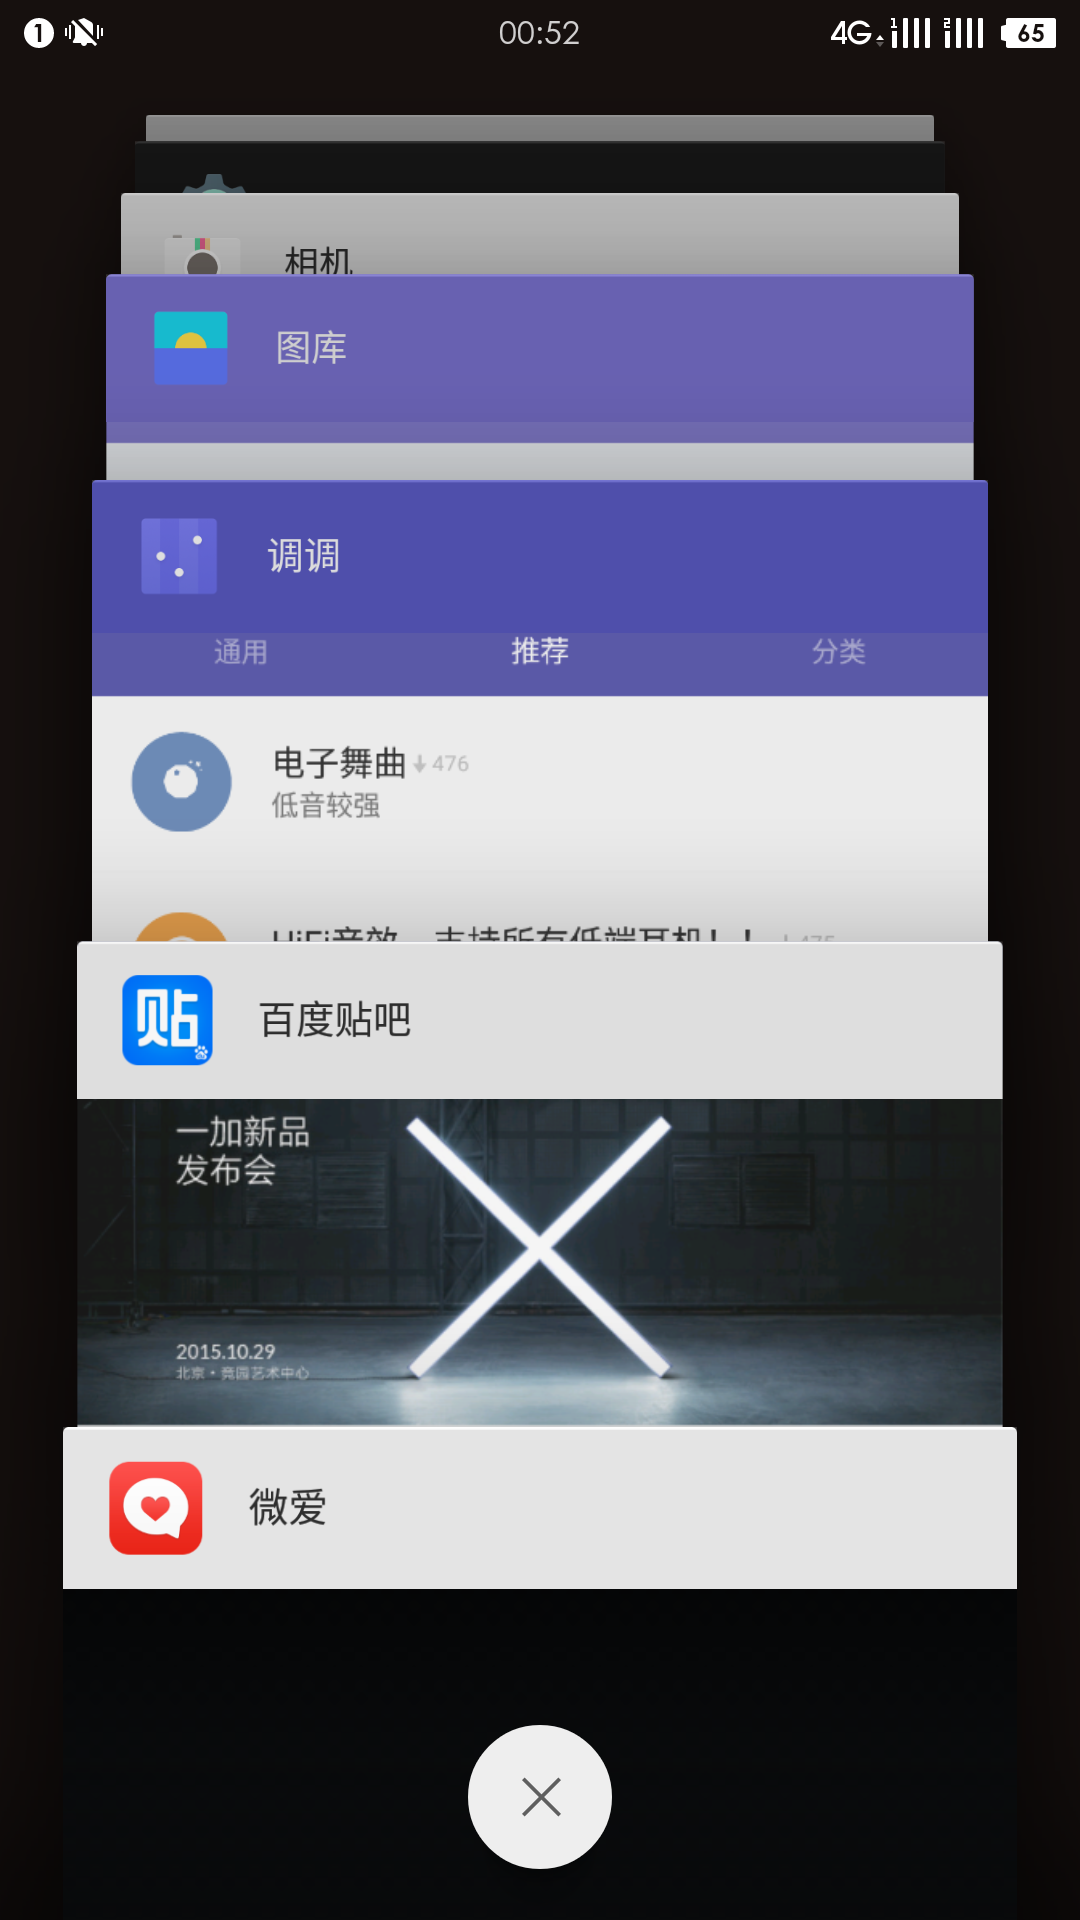 Screenshot_2015-10-29-00-52-44.png